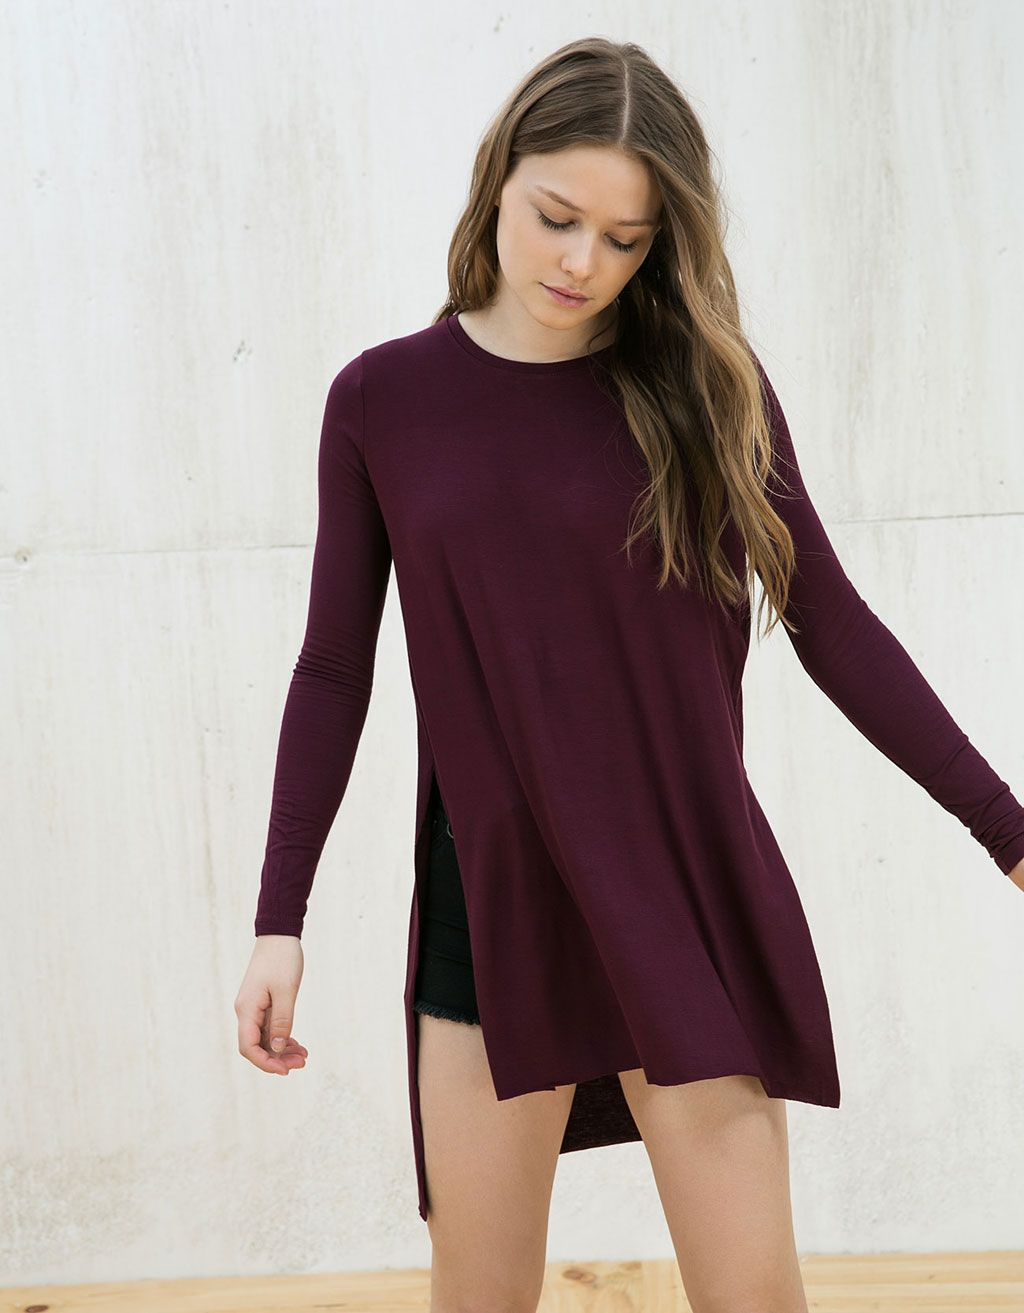 Extra Long Top With Side Openings Dance Shirts Everyday Outfits Long Tops